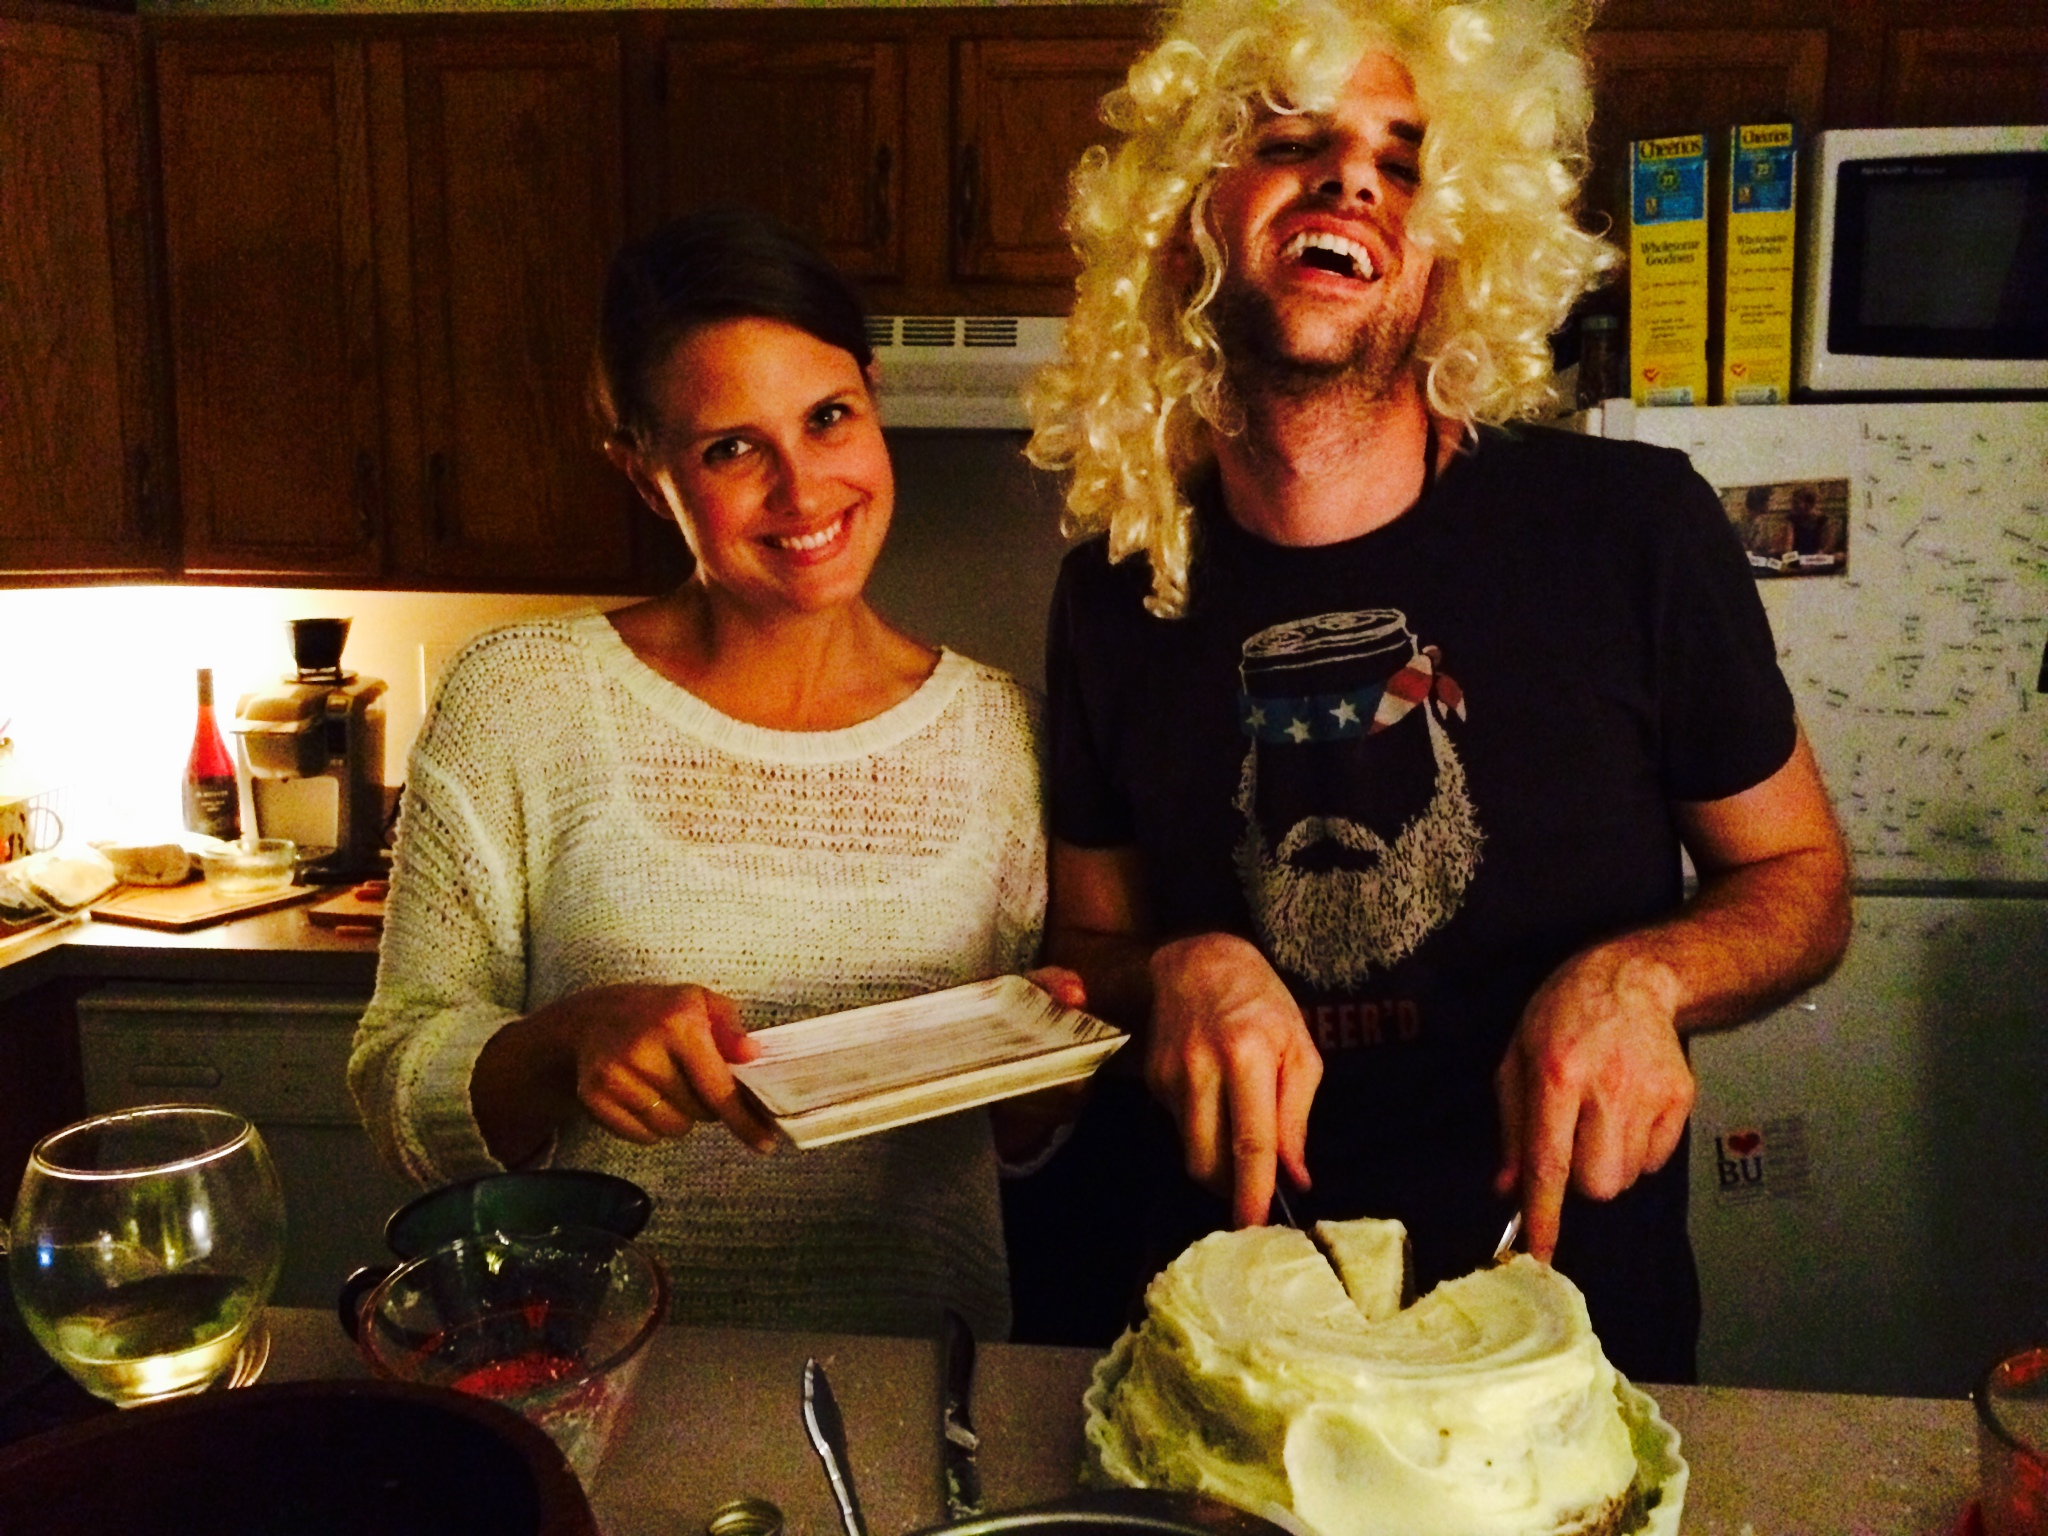 Blondes and brunettes can enjoy this one together! Lauren and her boyfriend, Tom (yes, it's a wig) serving up their gluten free cake!